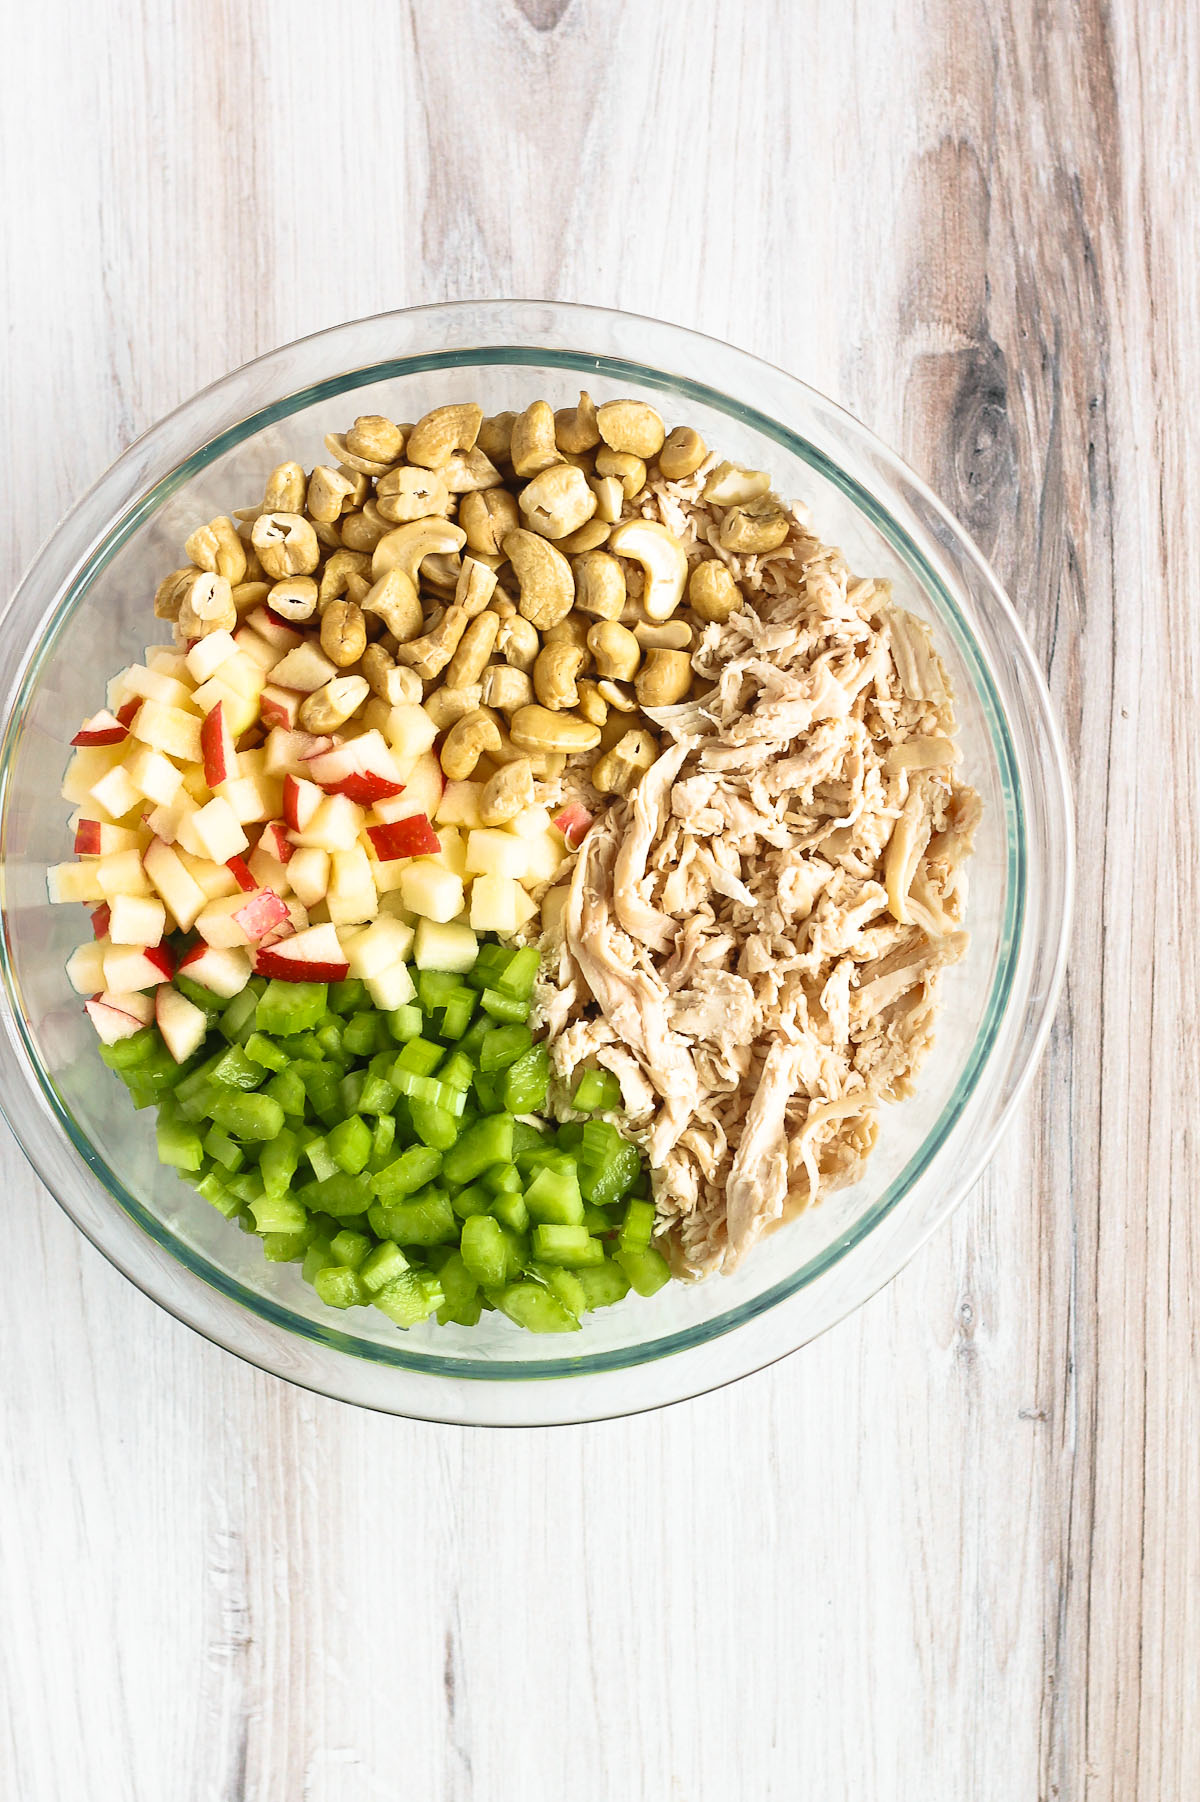 cashews, pulled chicken, apples, and celery in a mixing bowl